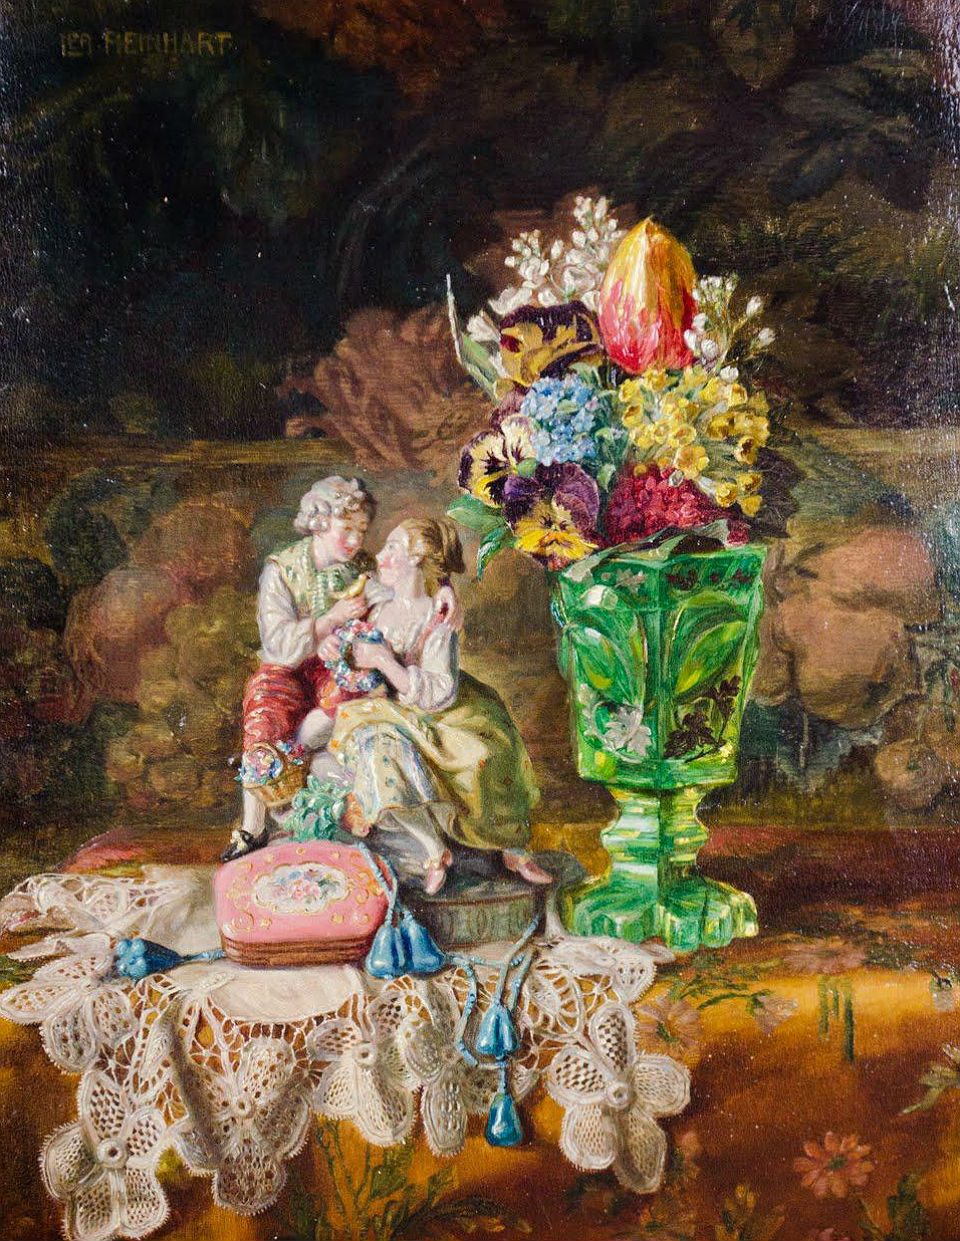 early-20th-century-vintage-still-life-oil-painting-by-lea-reinhart-0247.jpg